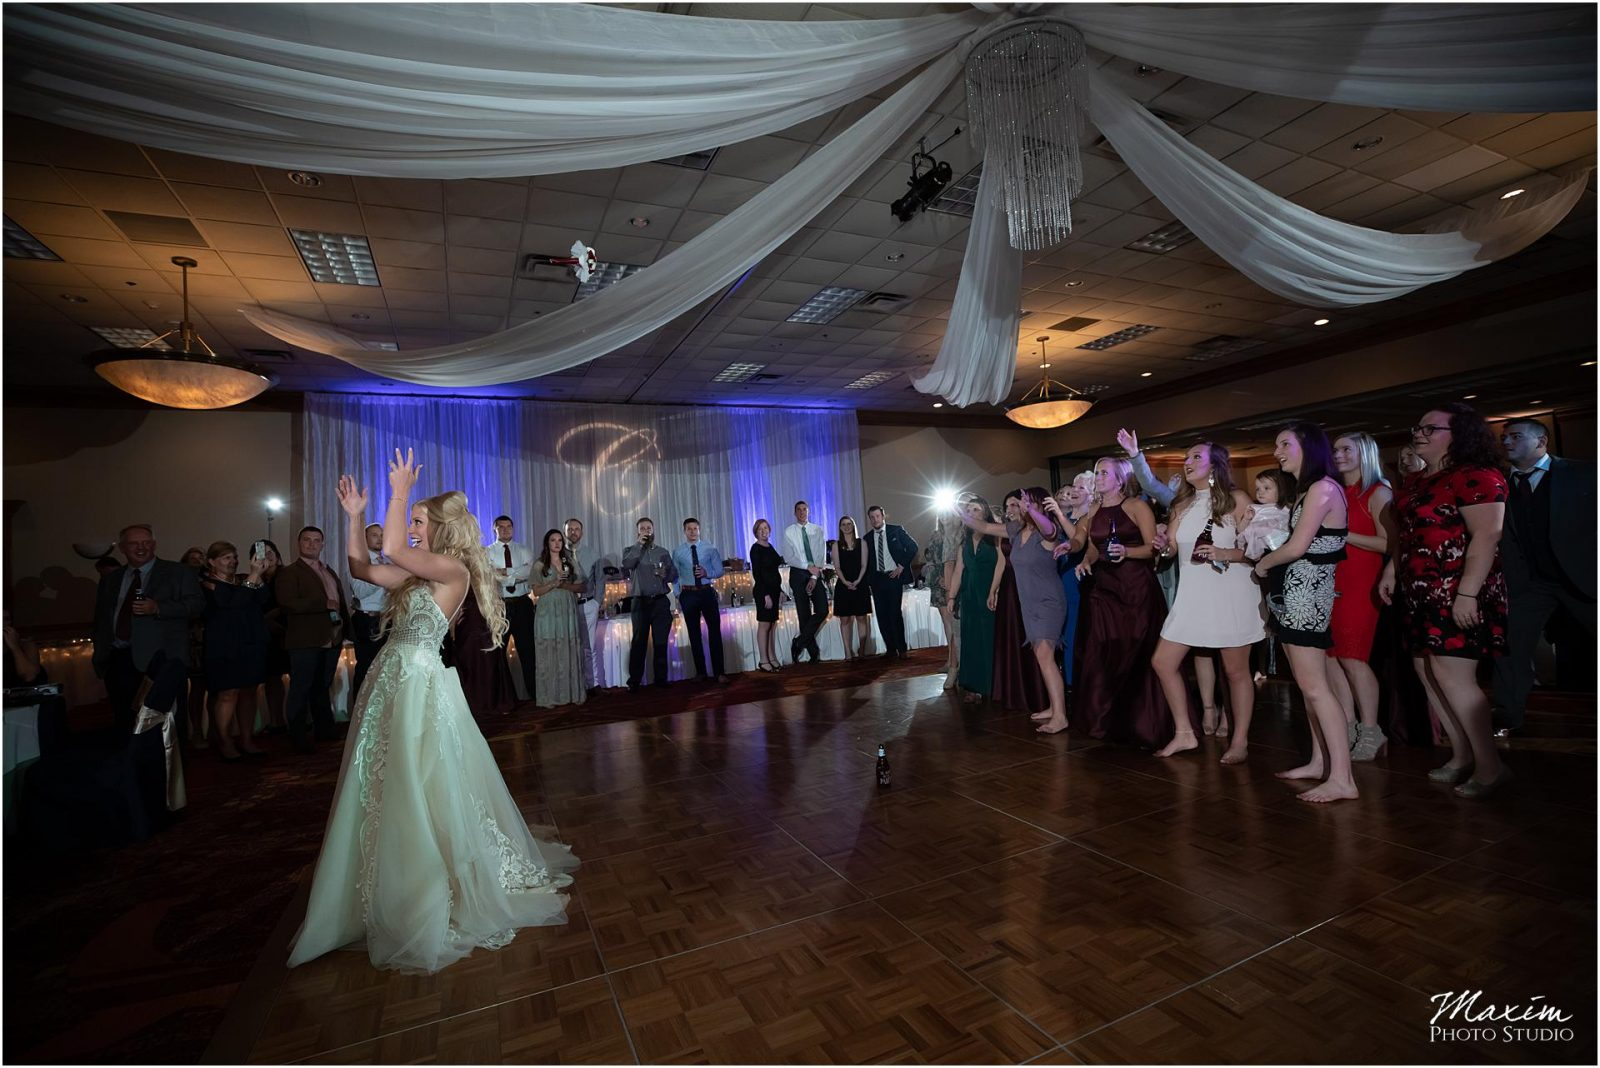 Holiday Inn Airport Wedding, Kentucky Wedding Photographer, Wedding Reception, Bouquet Toss